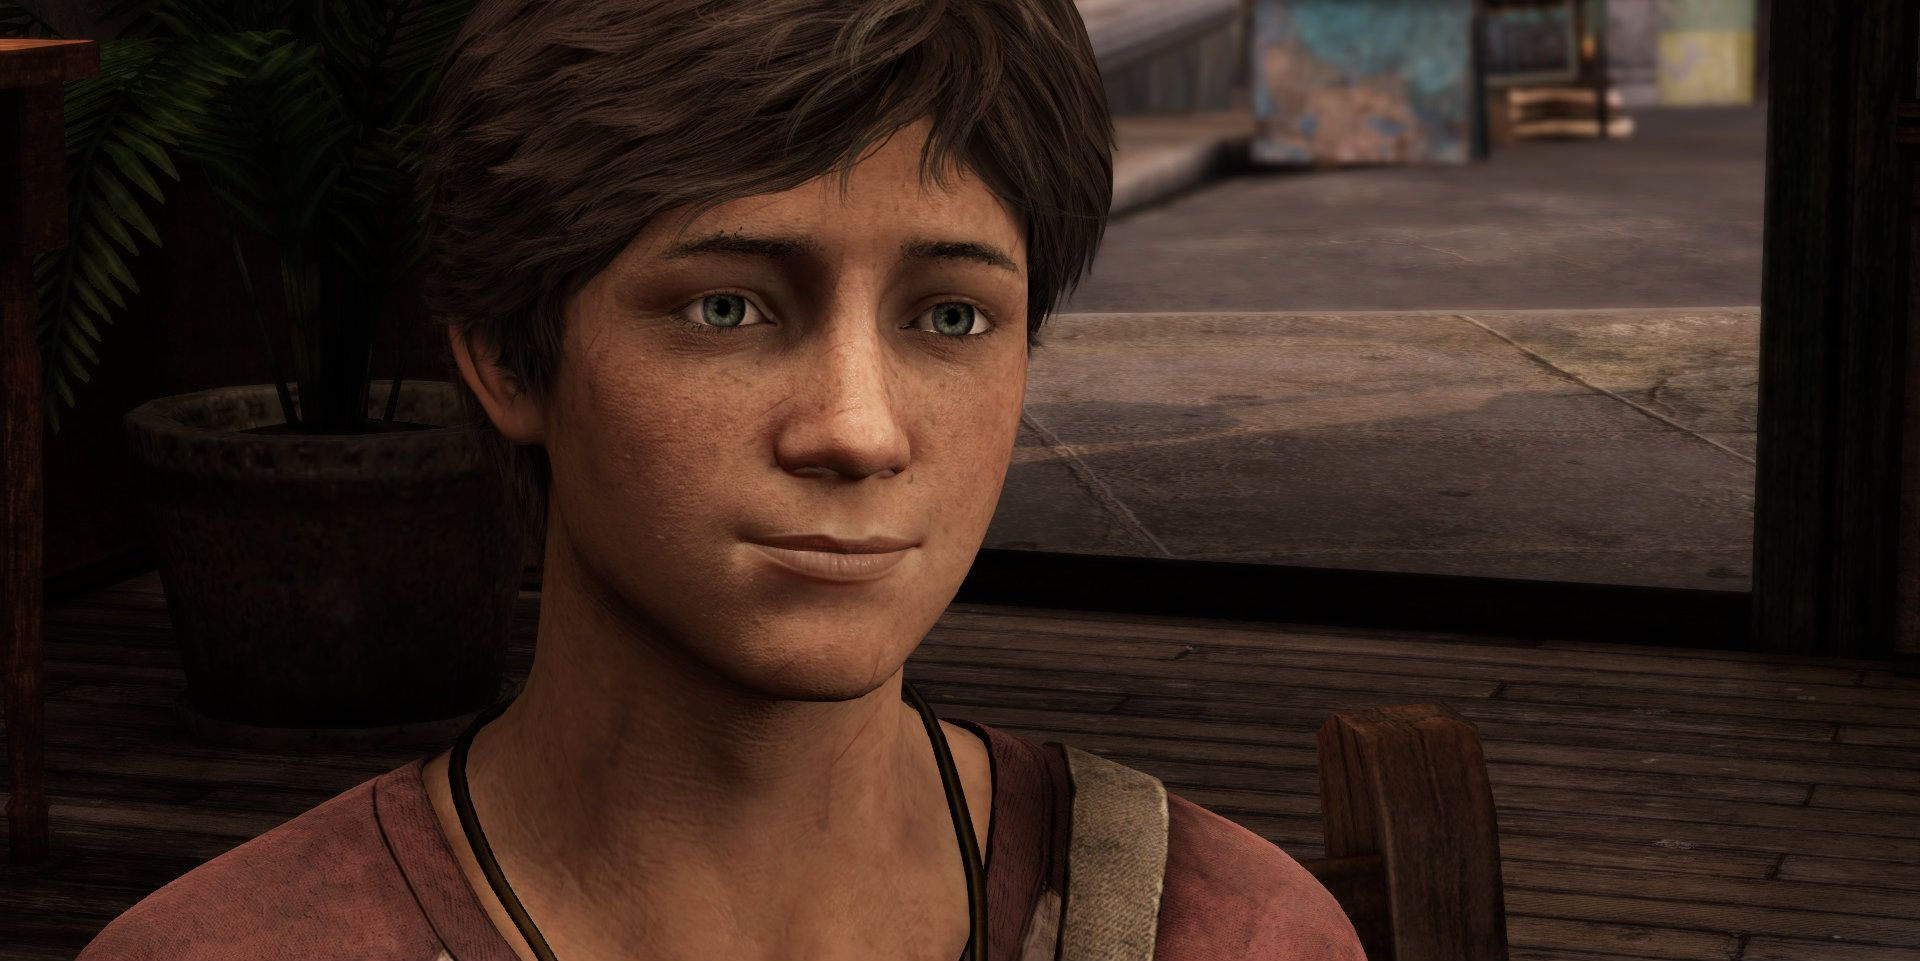 'Stranger Things' and 'Arrival' Producer Shawn Levy To Direct 'Uncharted'  Movie